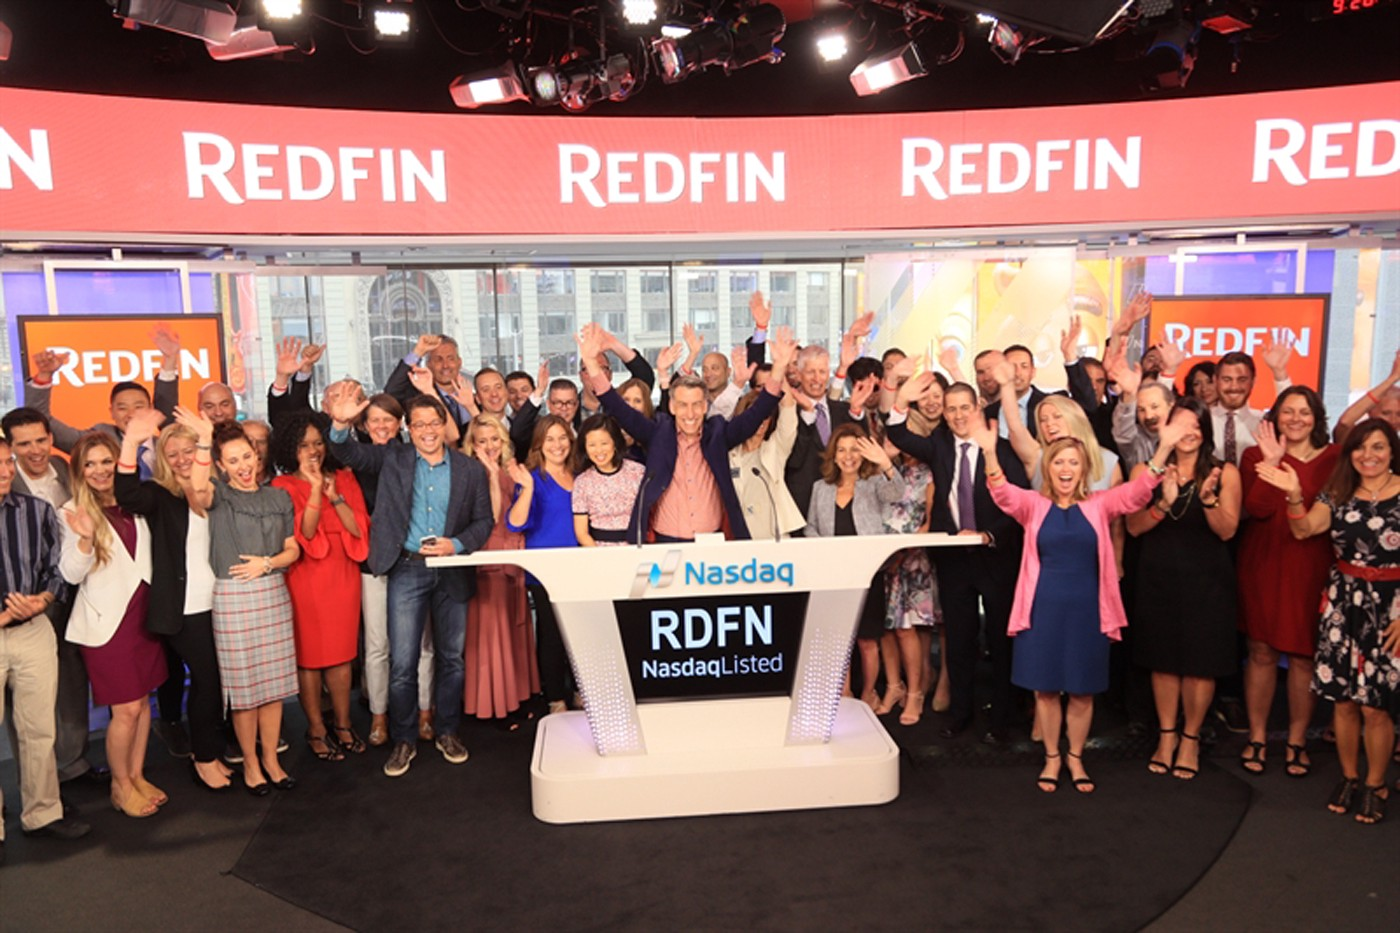 Redfin — A Story of Resilience - DFJVC - Medium